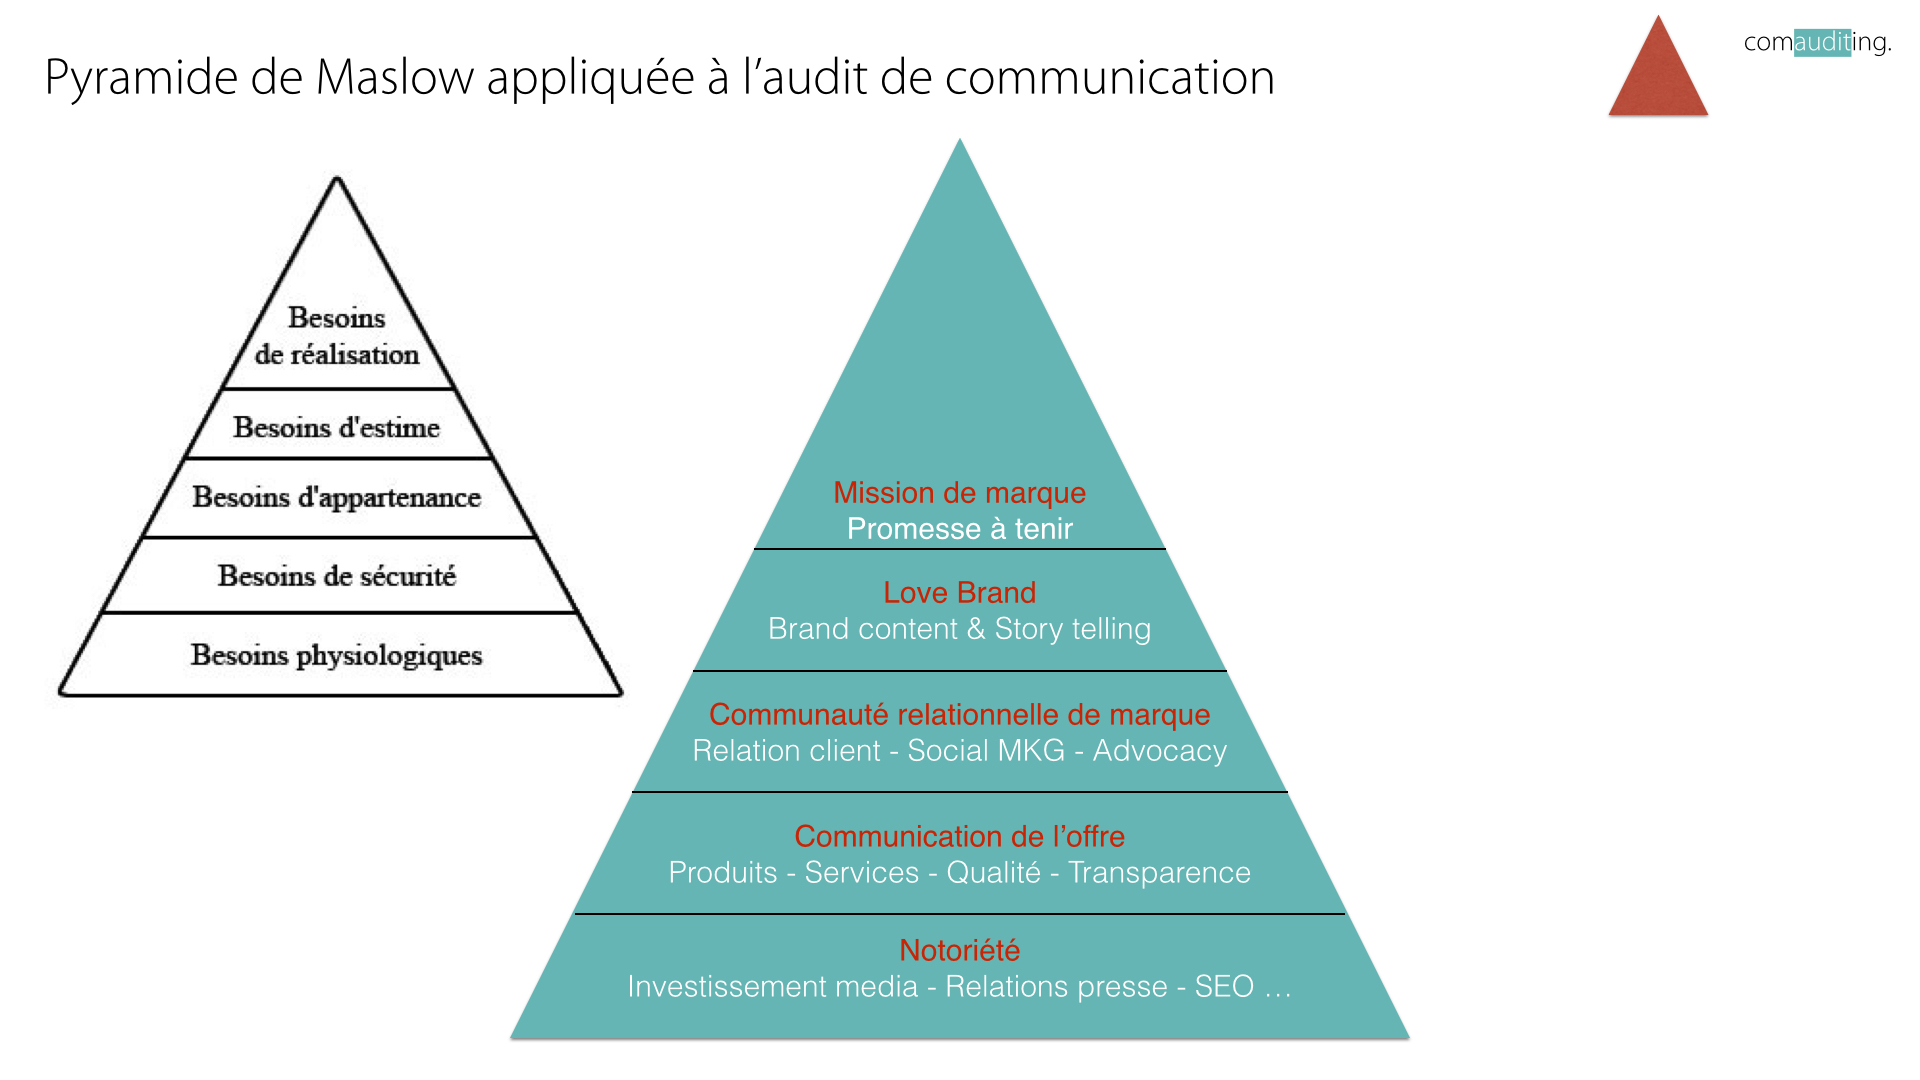 audit-de-communication-maslow